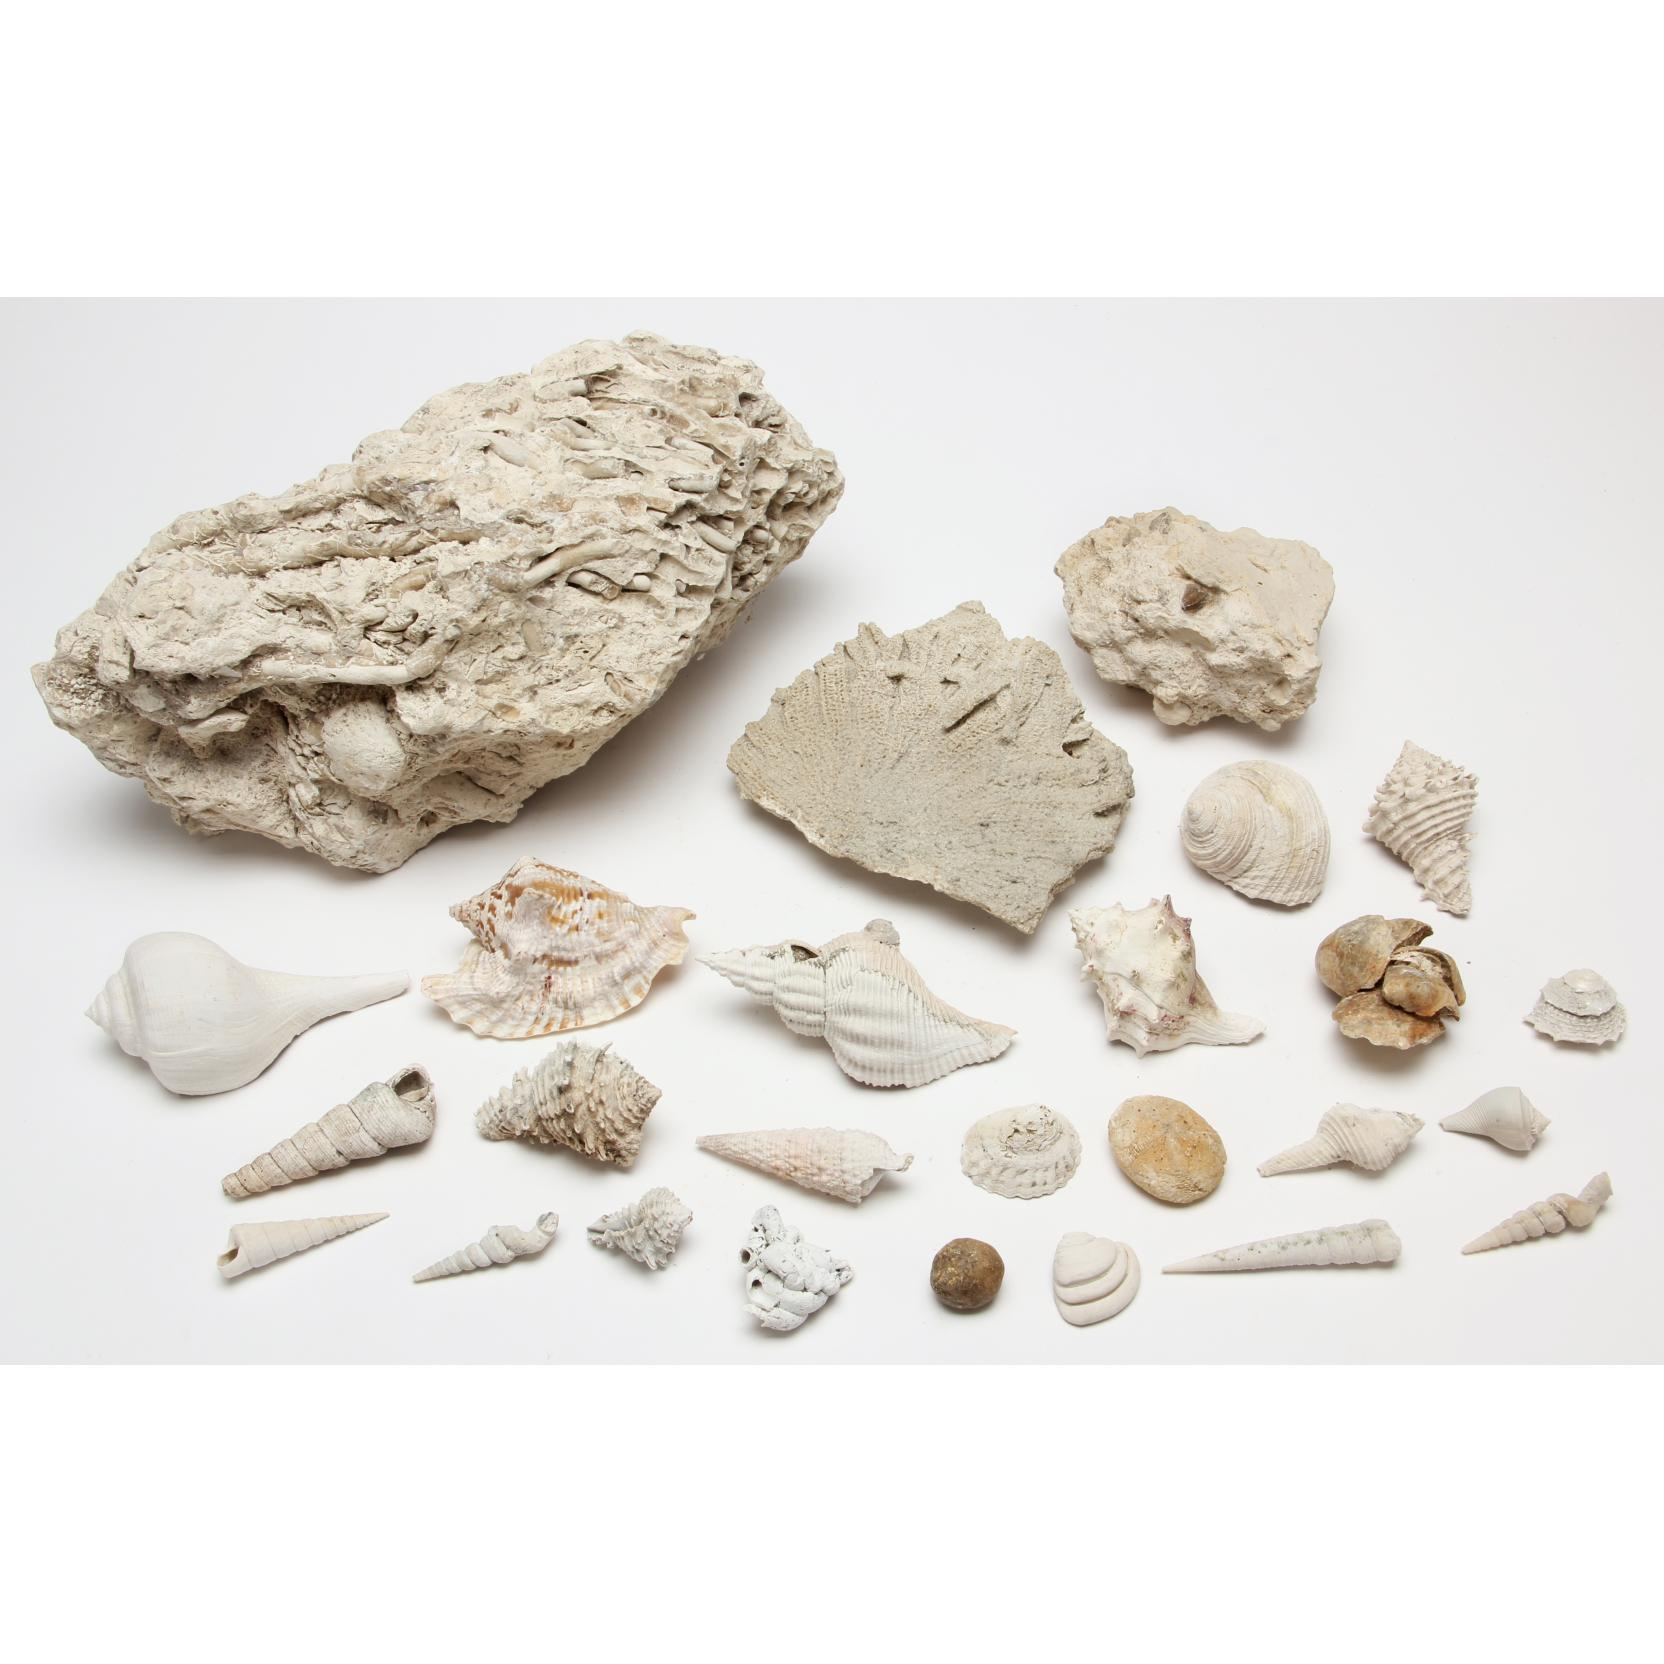 florida-fossil-grouping